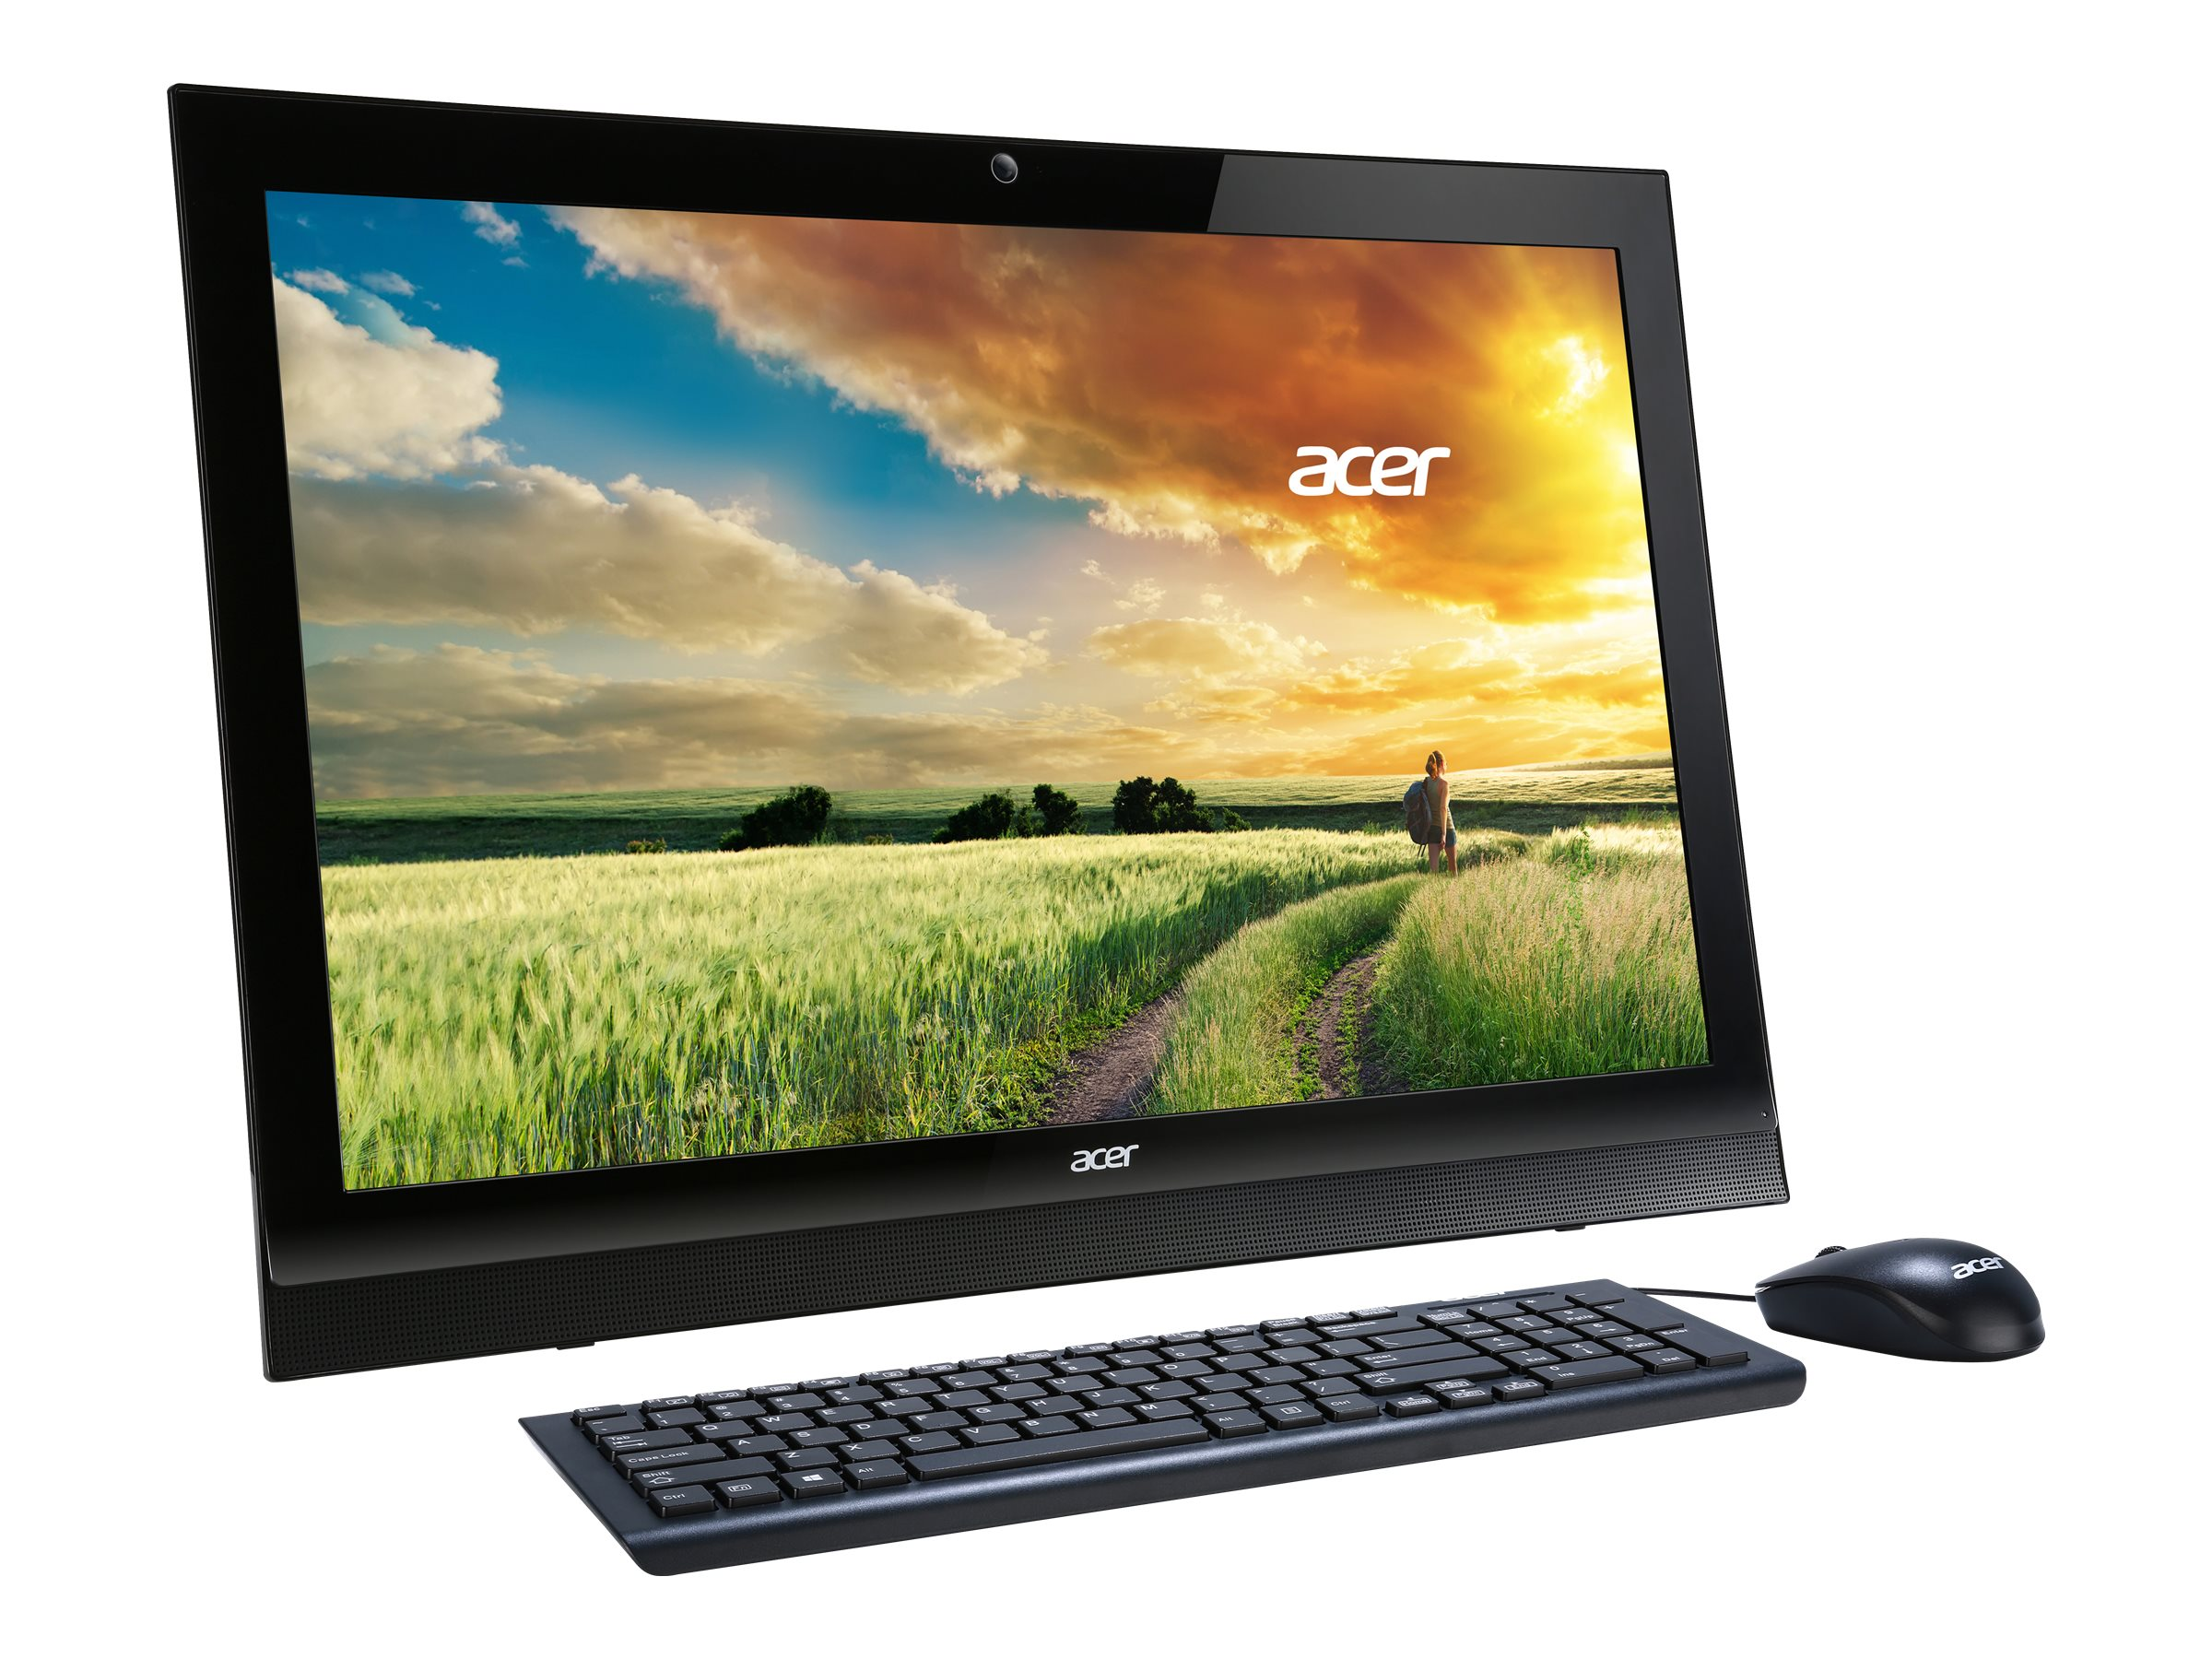 Acer DQ.SZWAA.004 Image 3